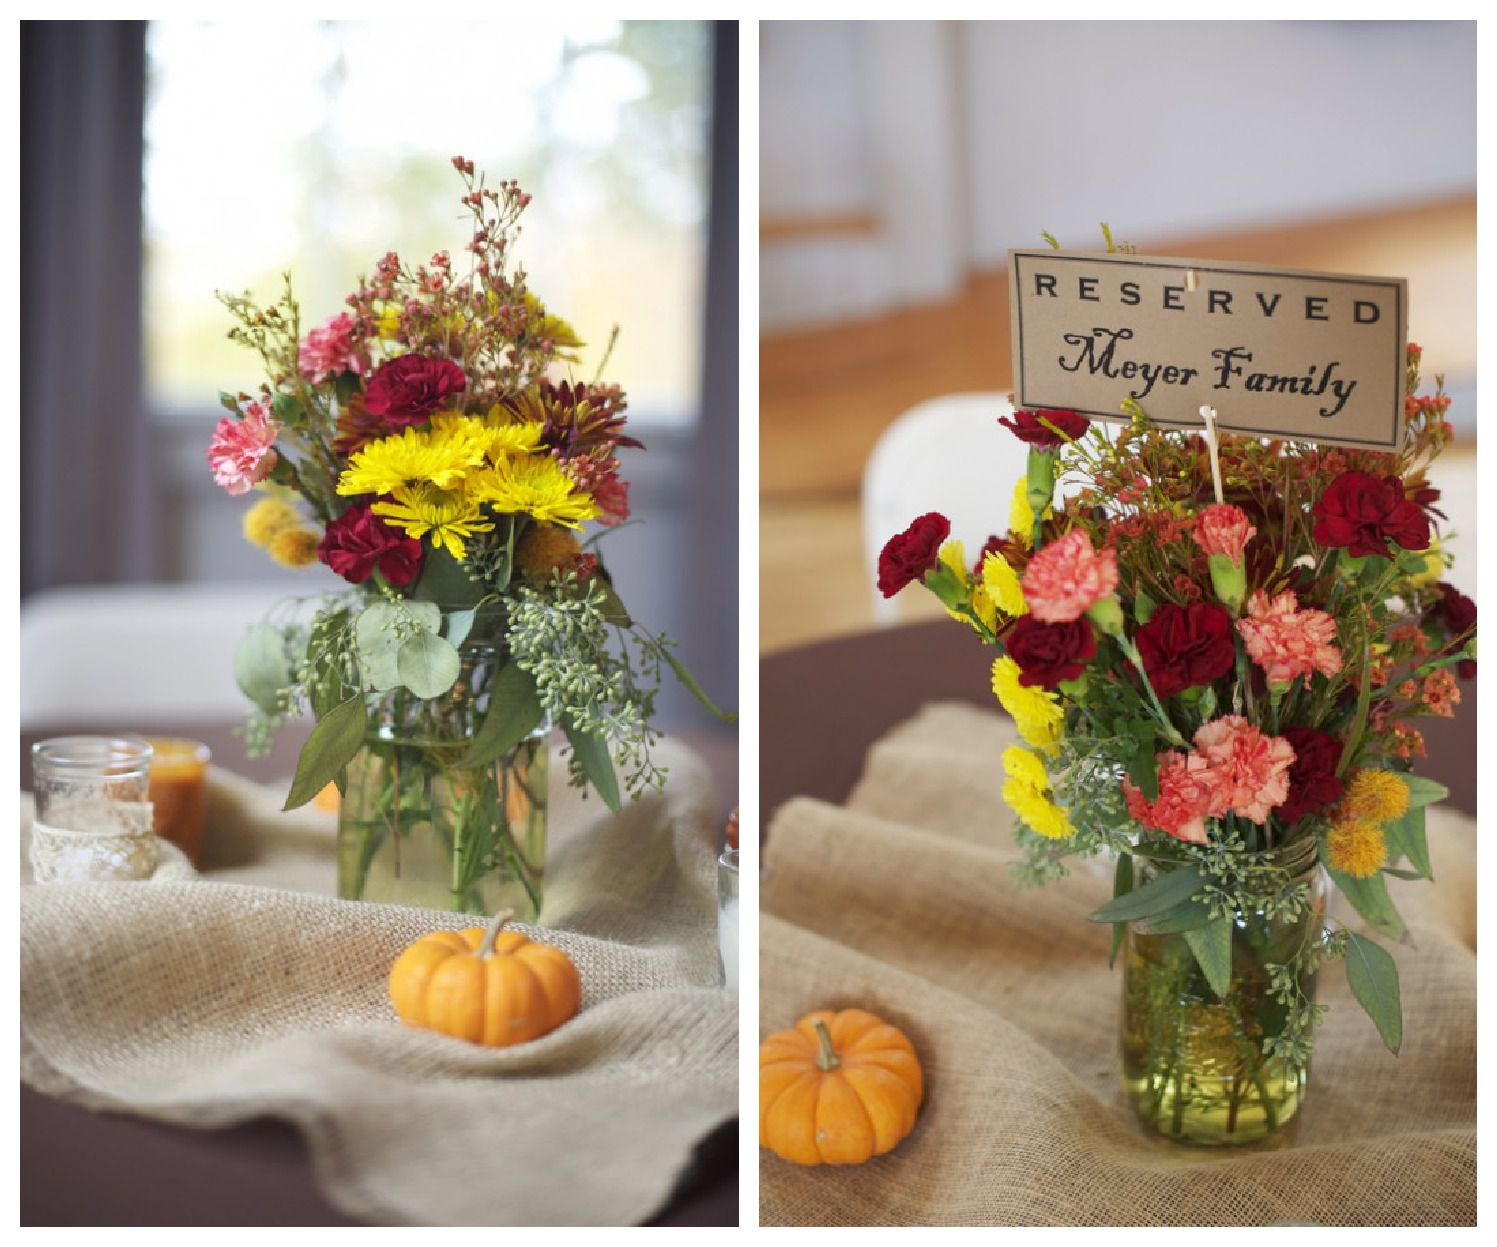 Rustic wedding centerpiece ideas rustic wedding chic fall rustic wedding centerpiece junglespirit